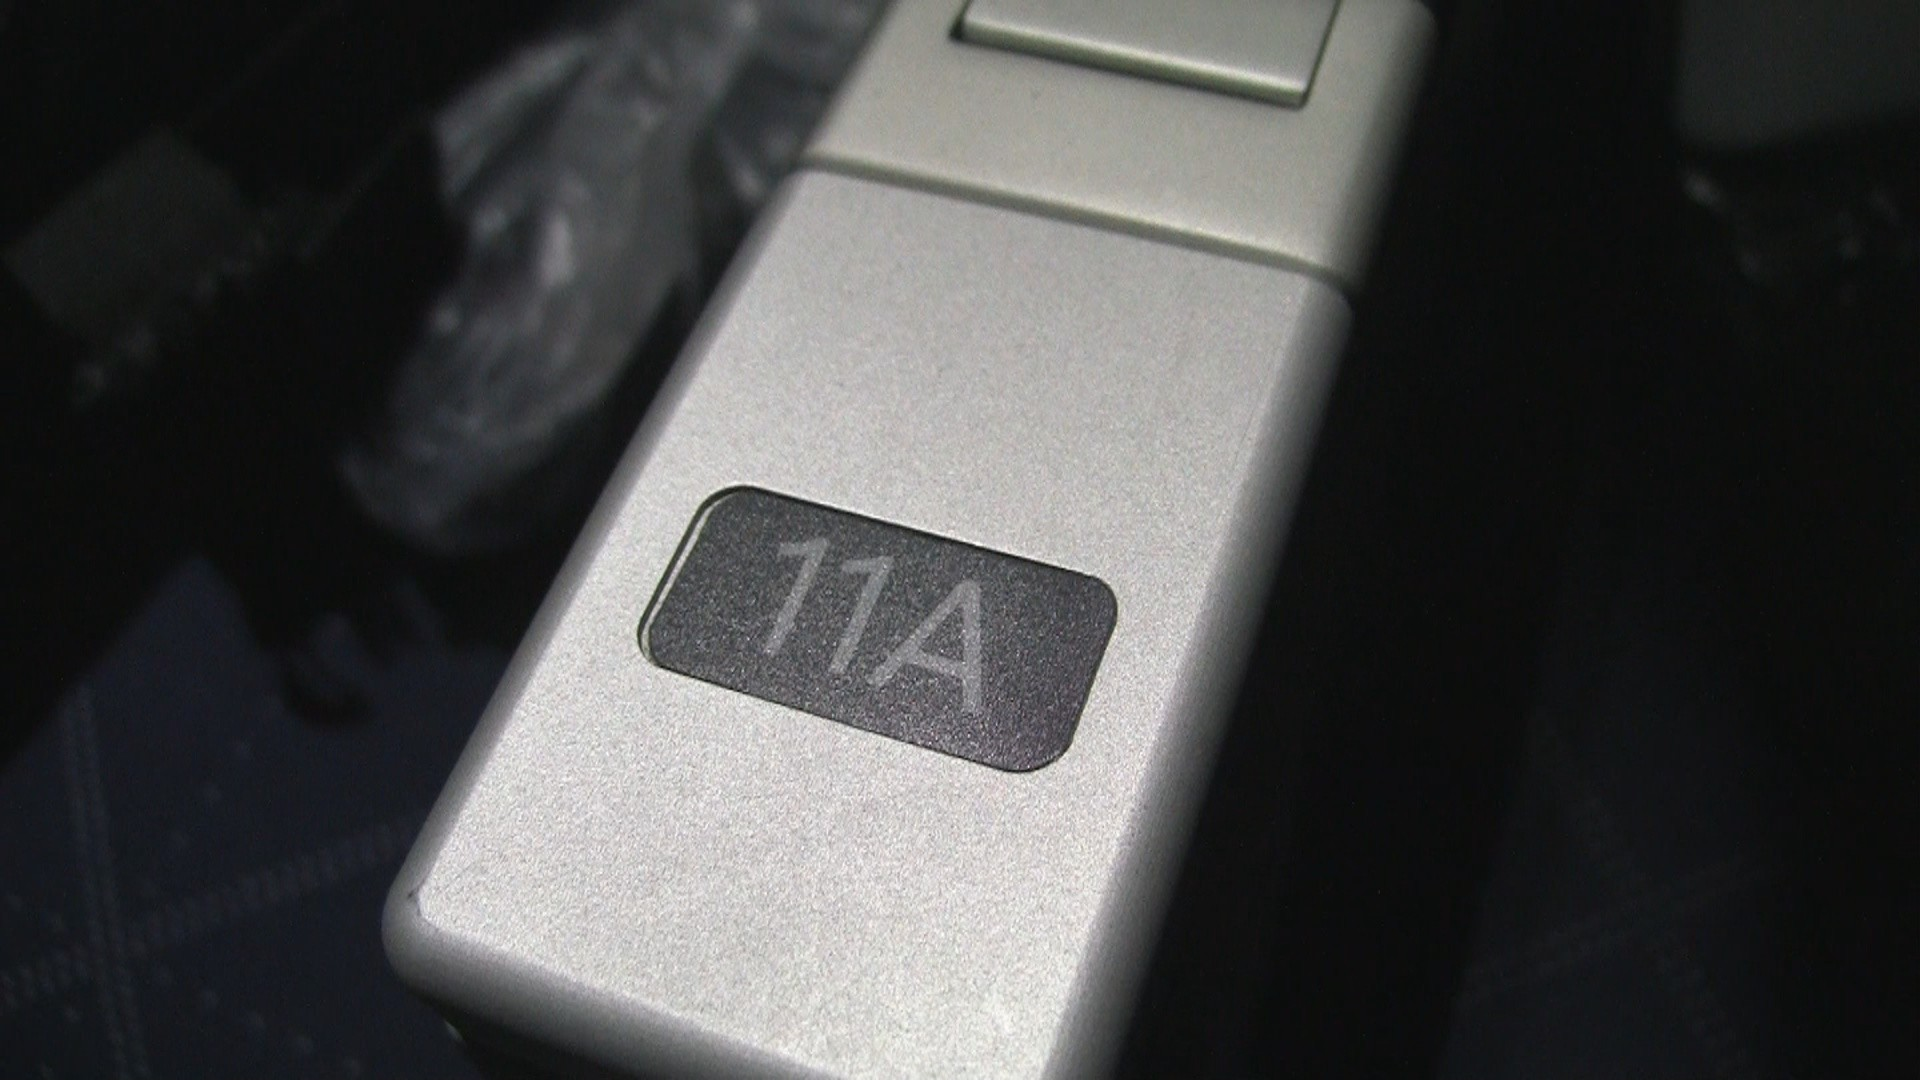 Seat 11A number printed in armrest.